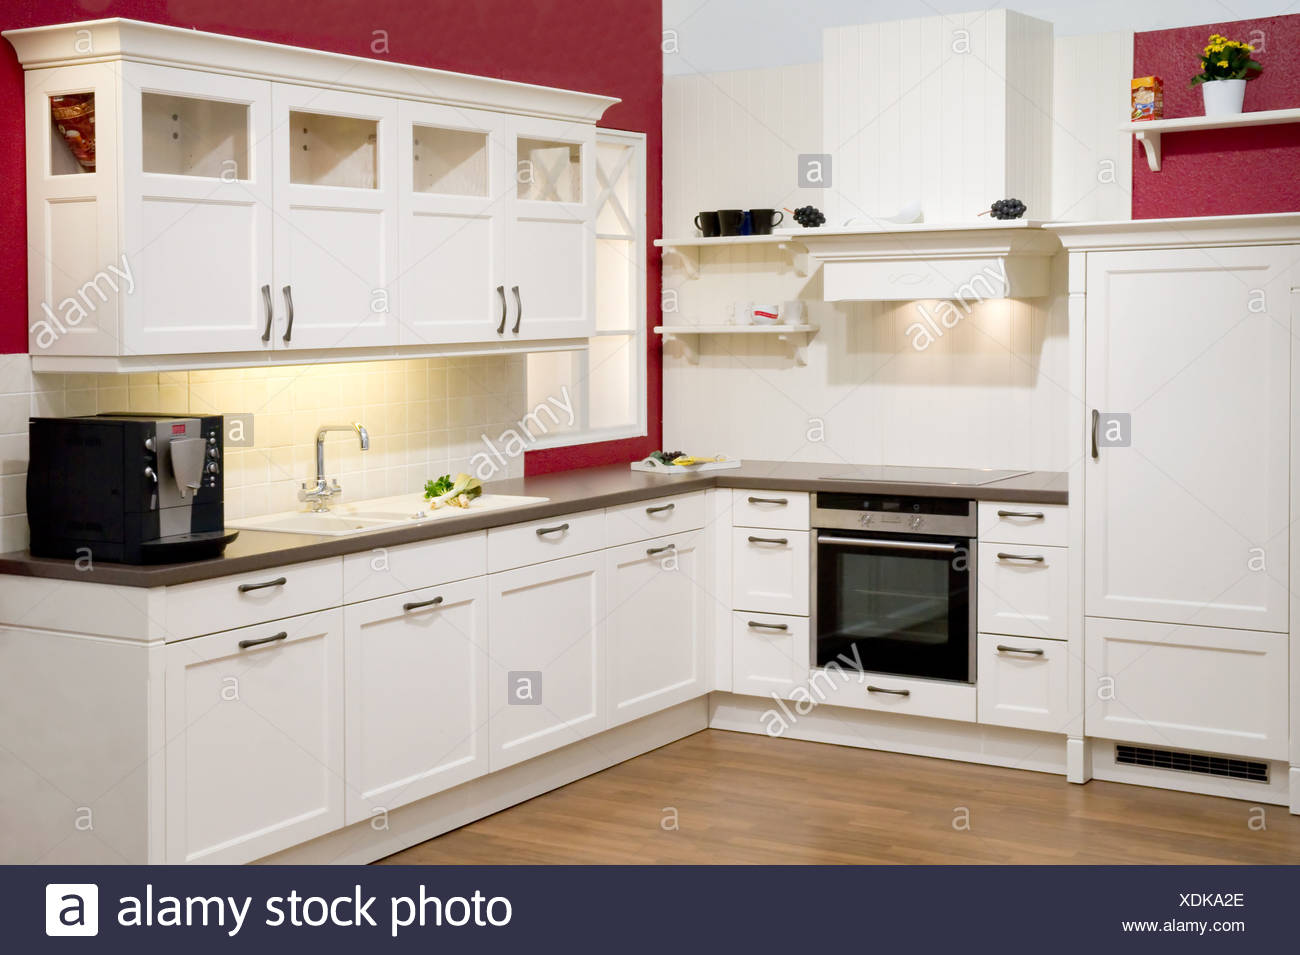 moderne cuisine quip e moderne einbauk che banque d 39 images photo stock 283781414 alamy. Black Bedroom Furniture Sets. Home Design Ideas